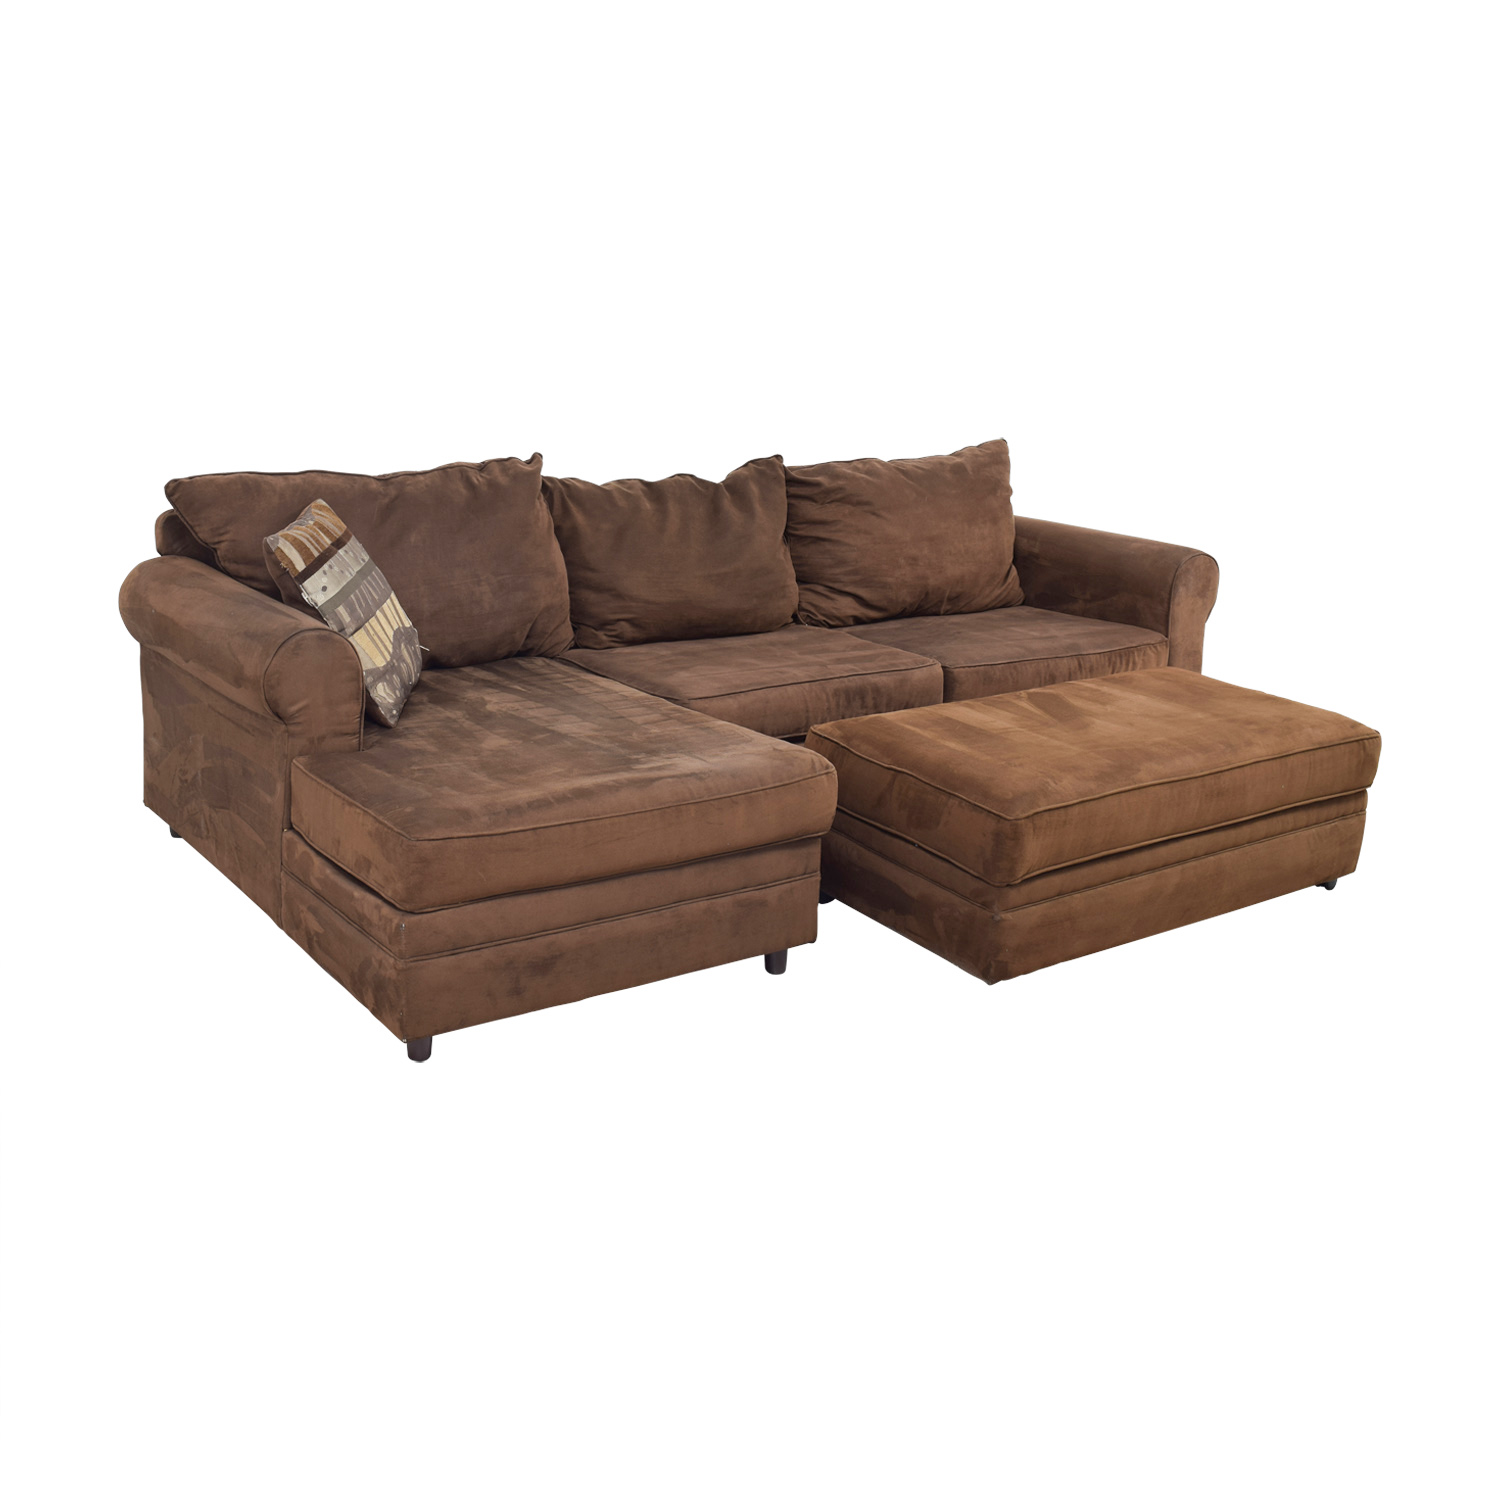 Chocolate Brown Sectional used